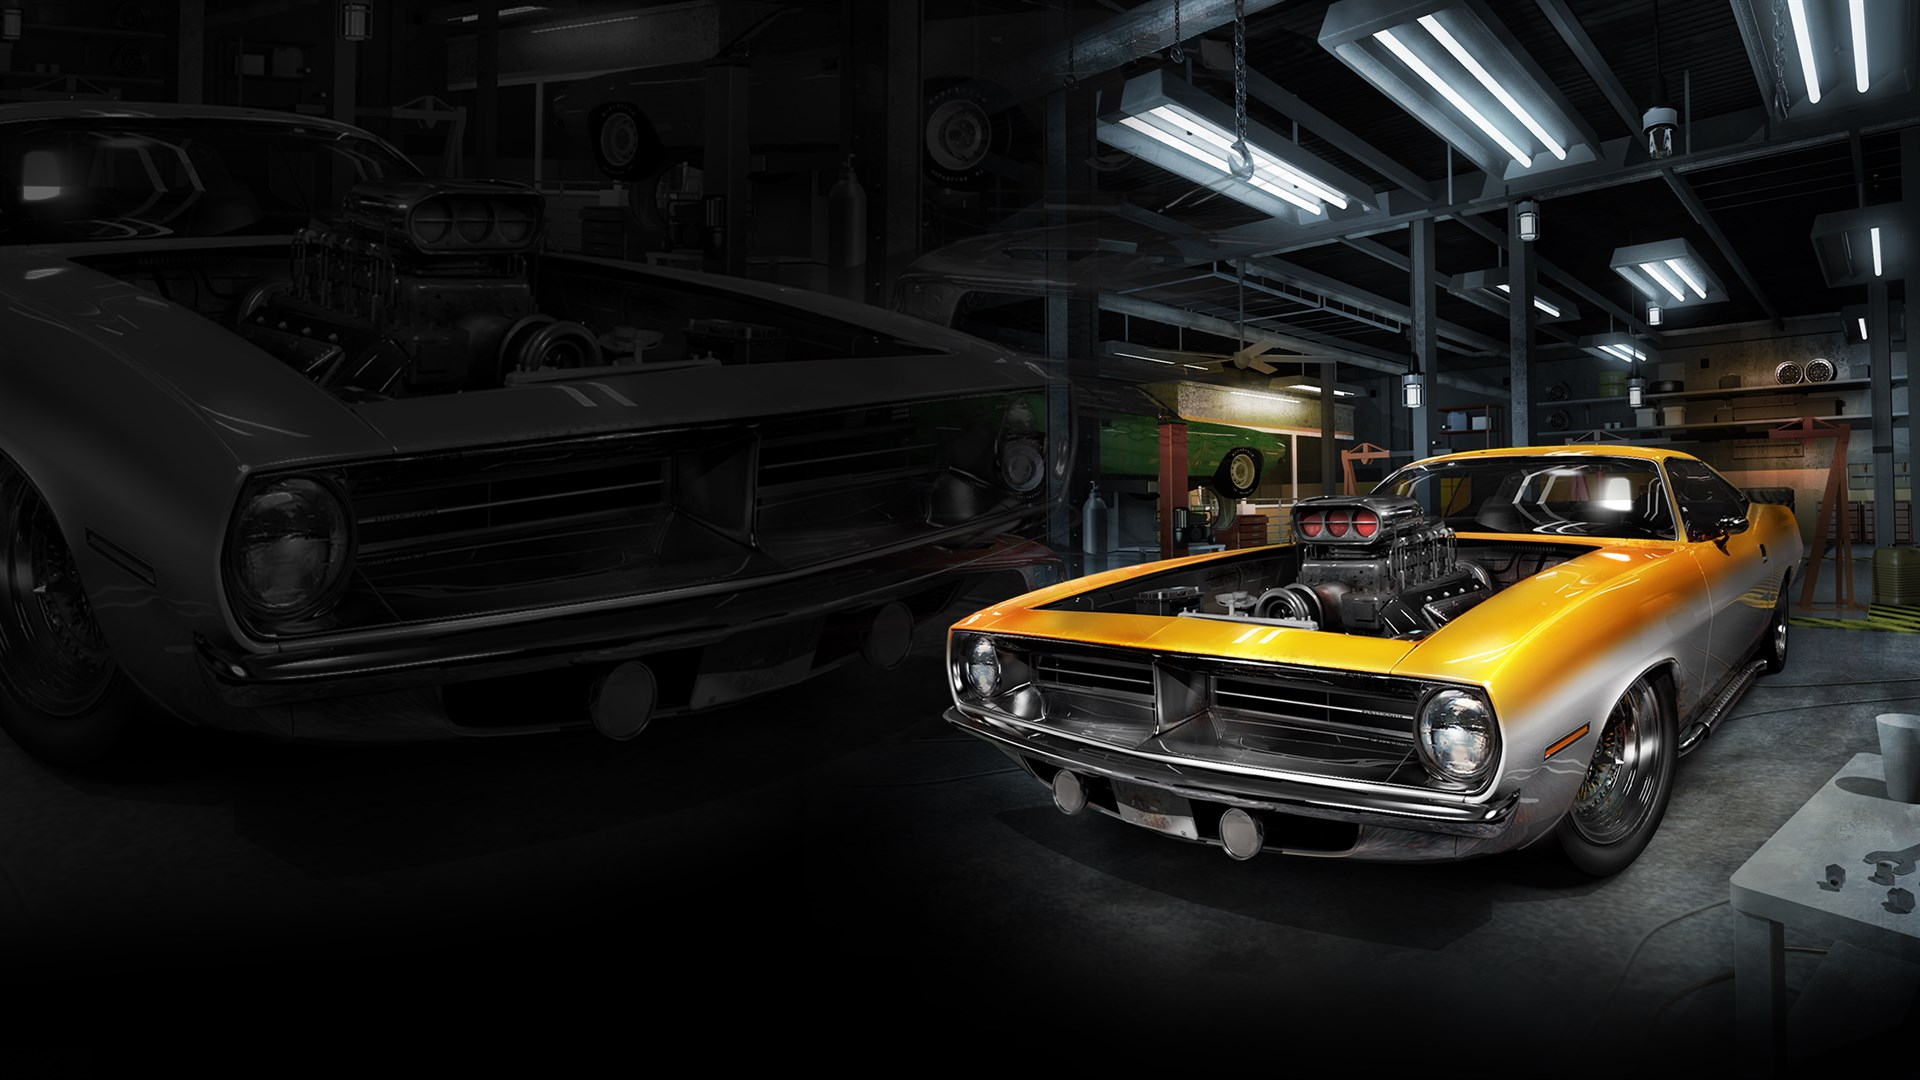 Car Mechanic Simulator Brings The World Of Workshops To Xbox One And